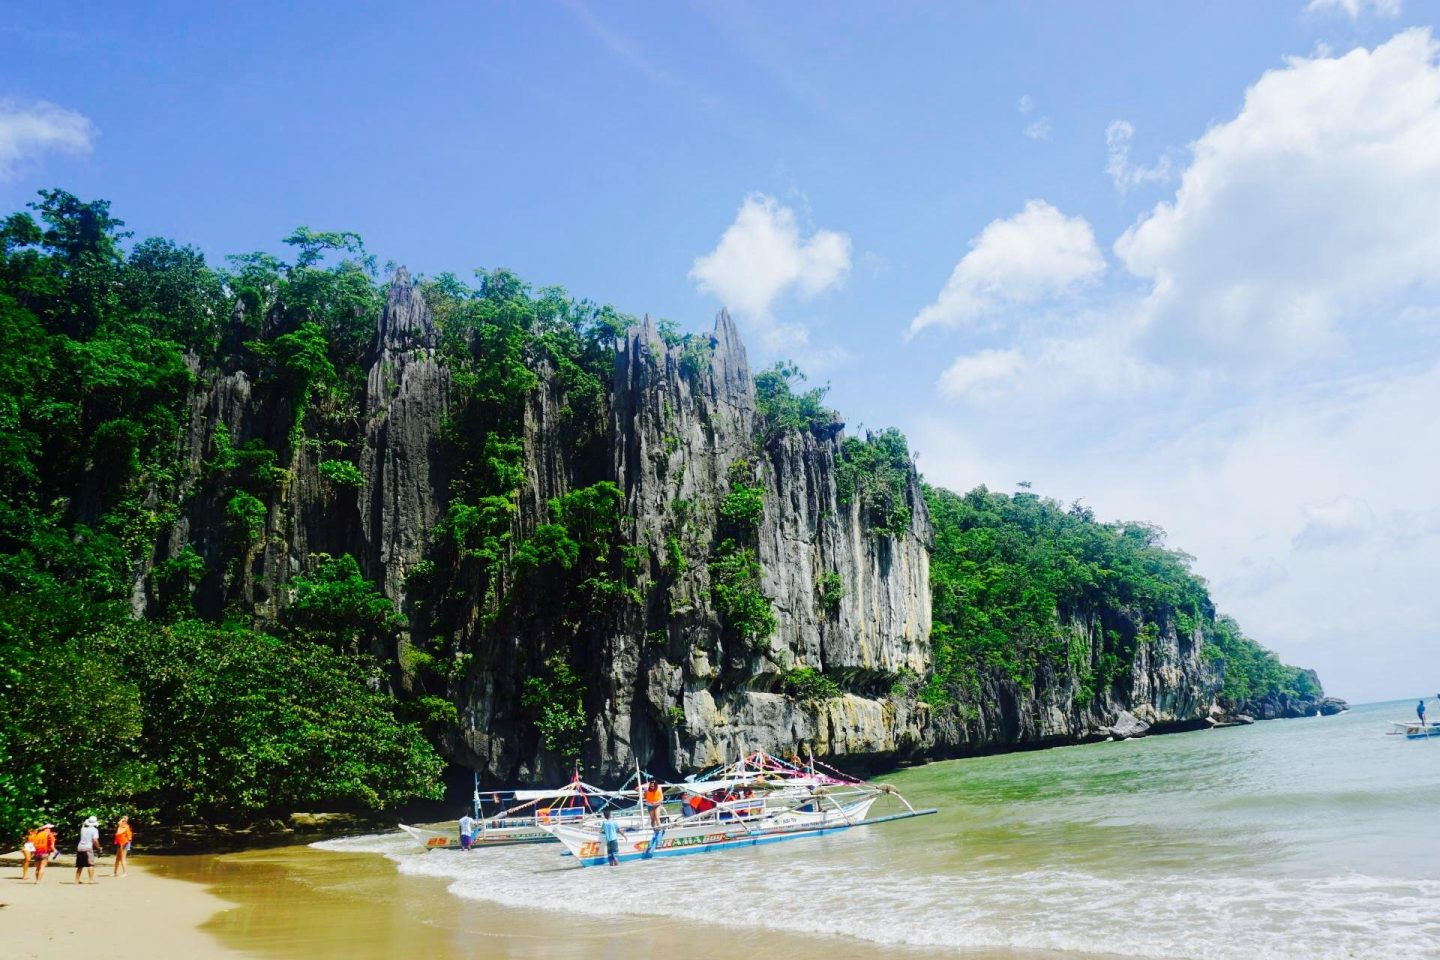 My summer vacation: Why it's more fun in the Philippines